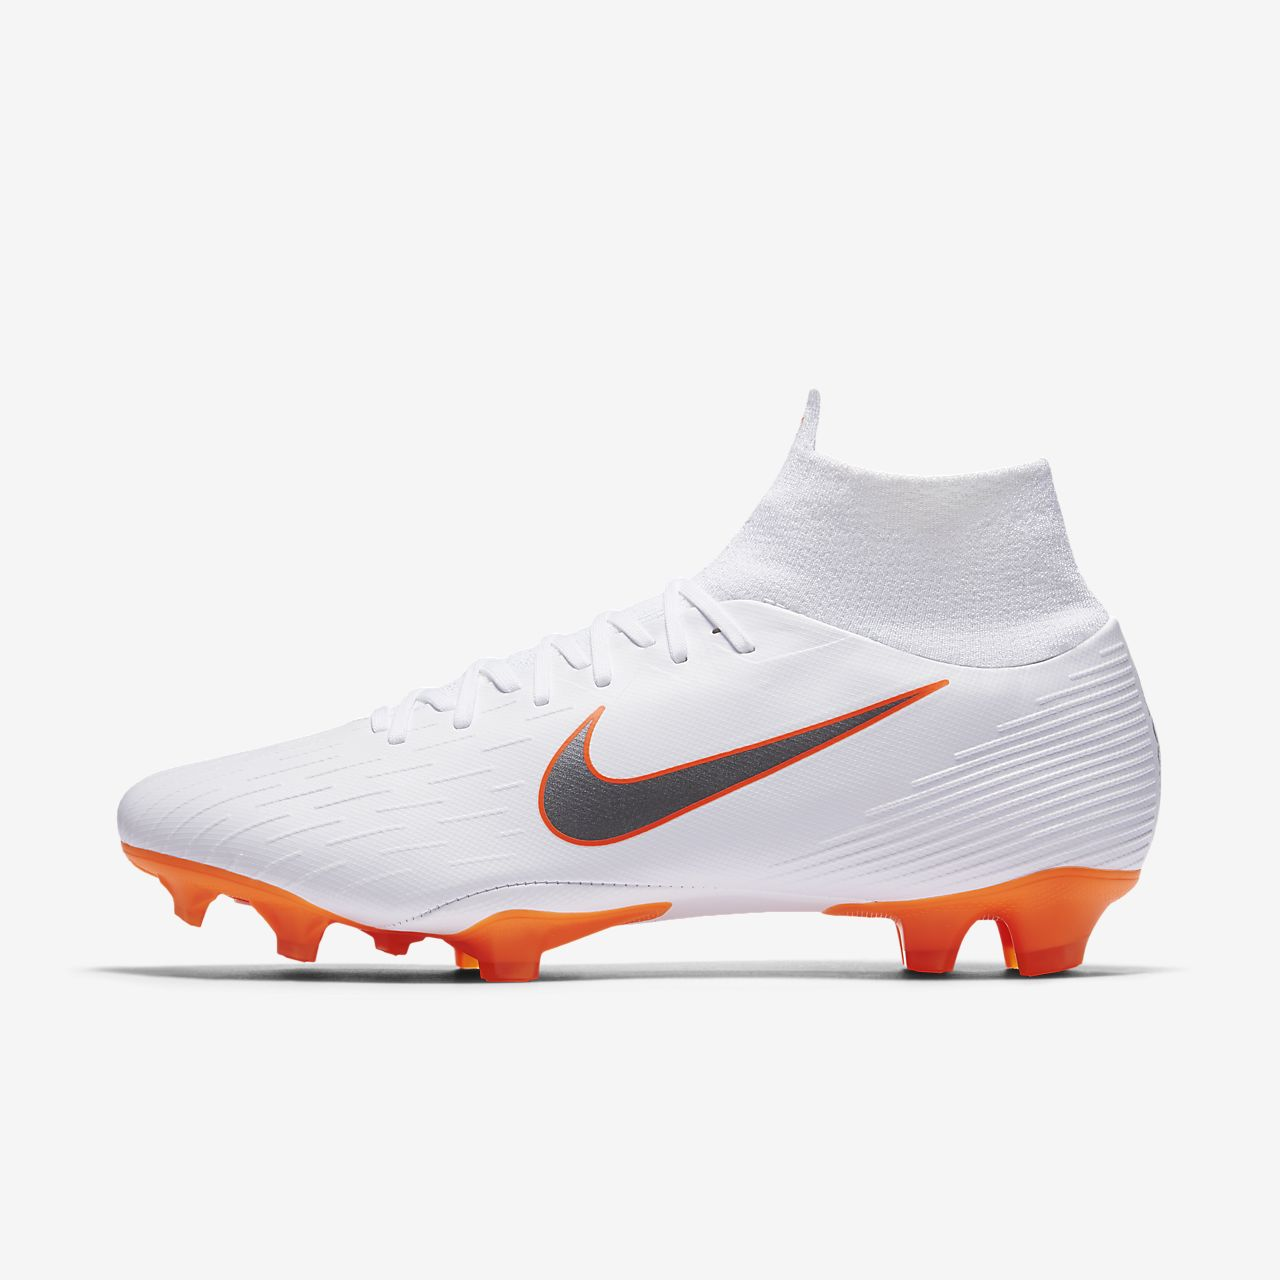 Nike Mercurial Superfly VI Pro Just Do It Firm Ground Football Boot